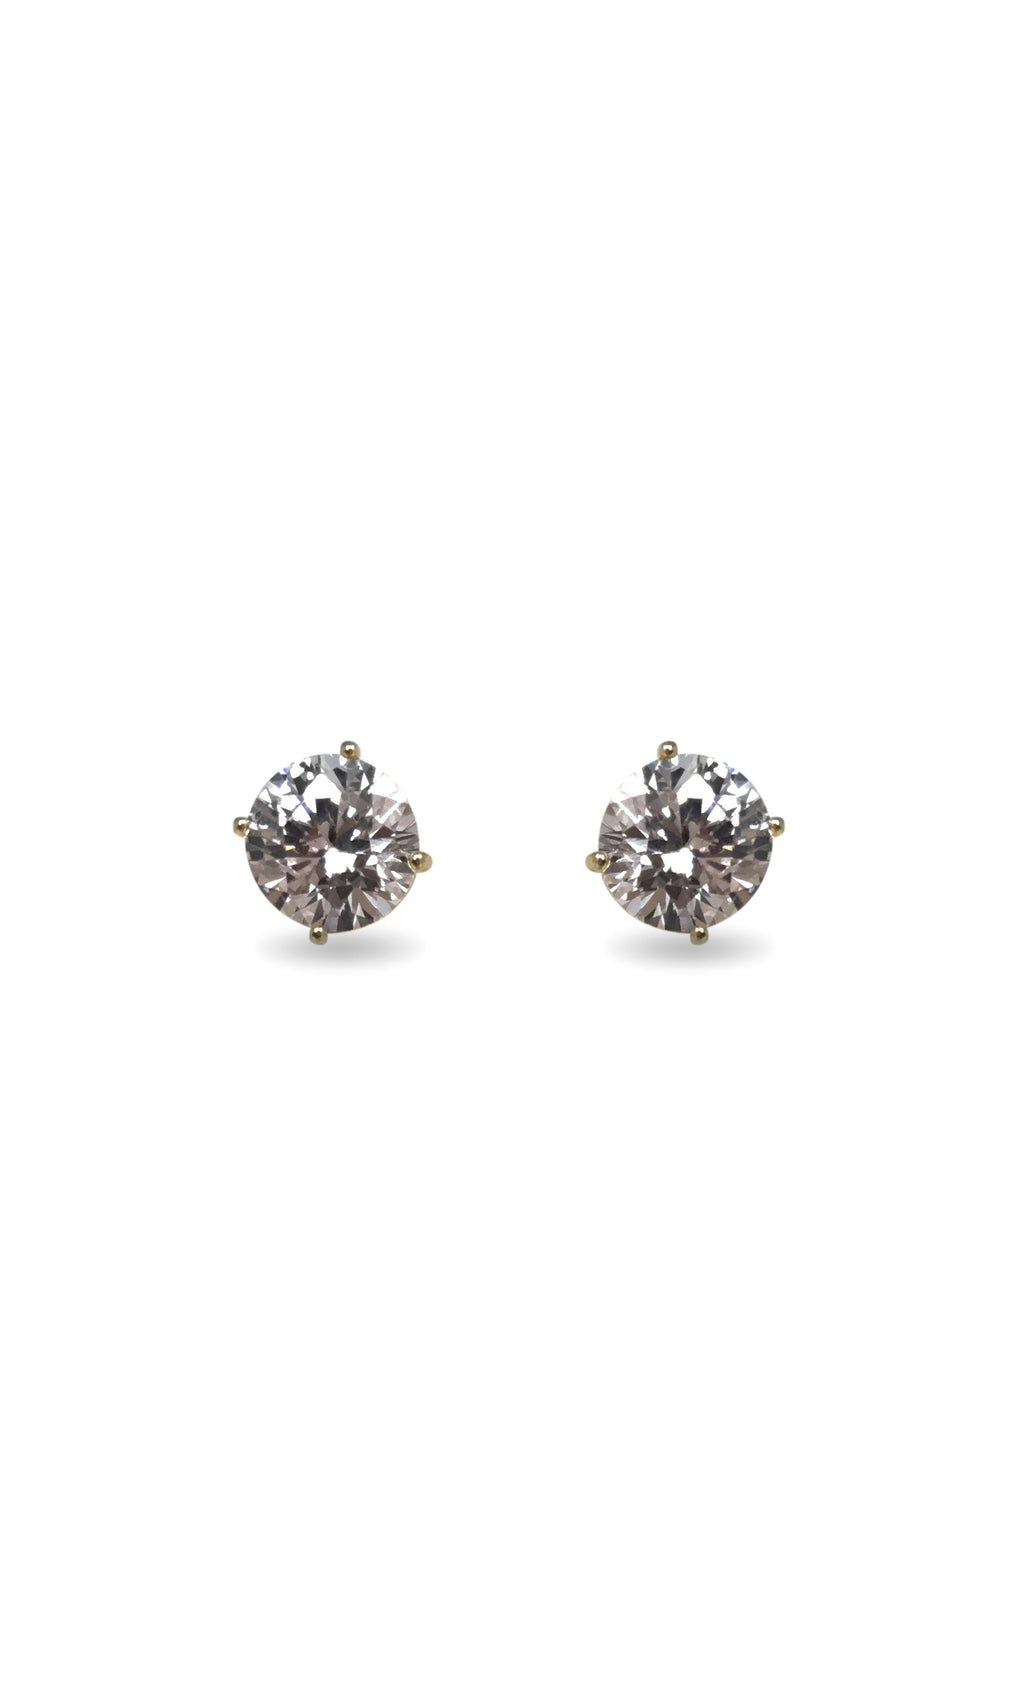 Indie XO Simple Elegance Gold Swarovski Crystal Rhinestone Stud Earrings